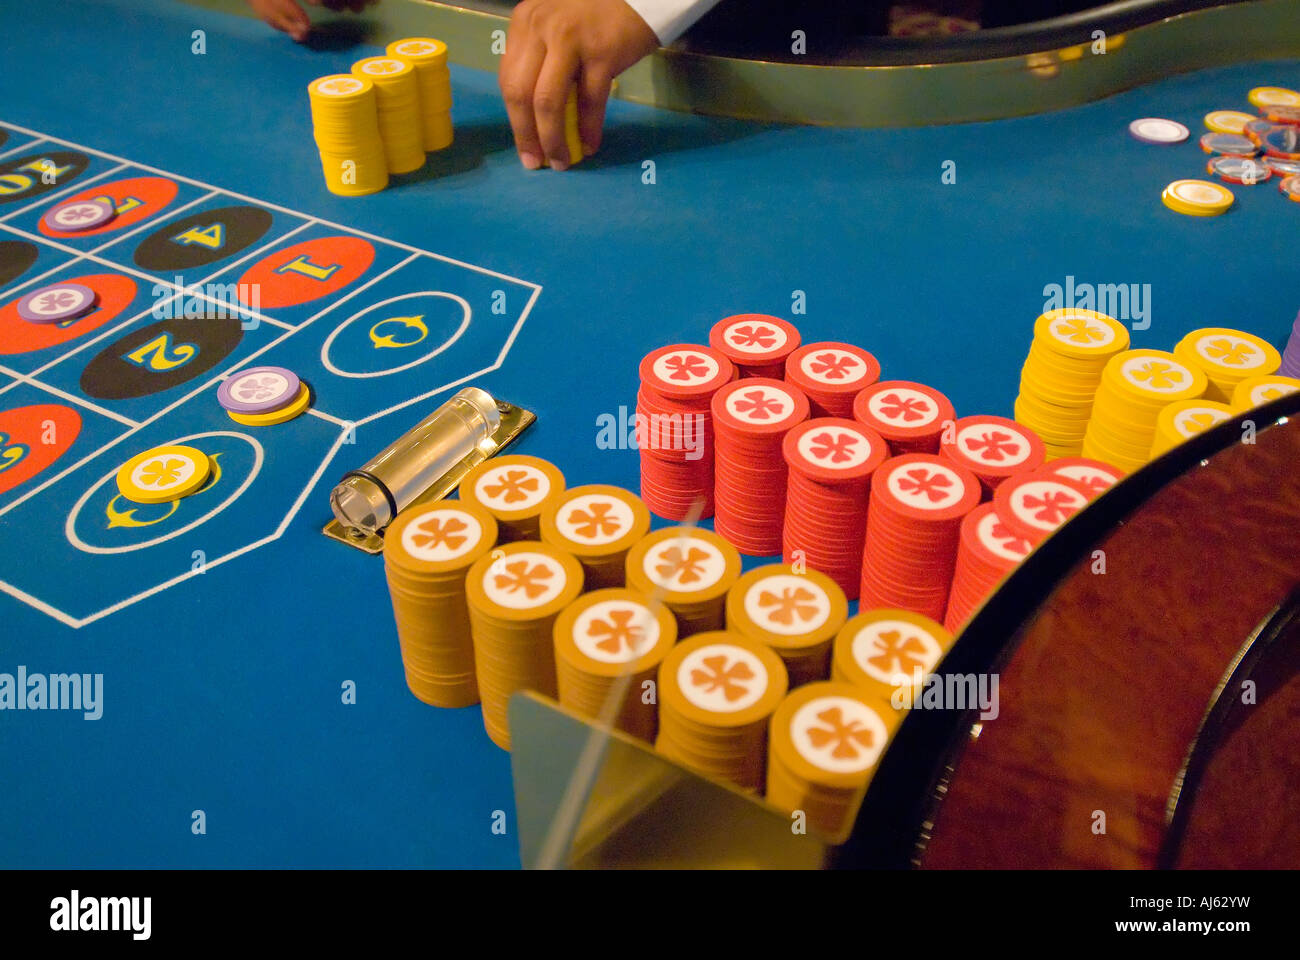 Gambling stack of colorful betting chips action addiction addictive casino gambling game chance - Stock Image